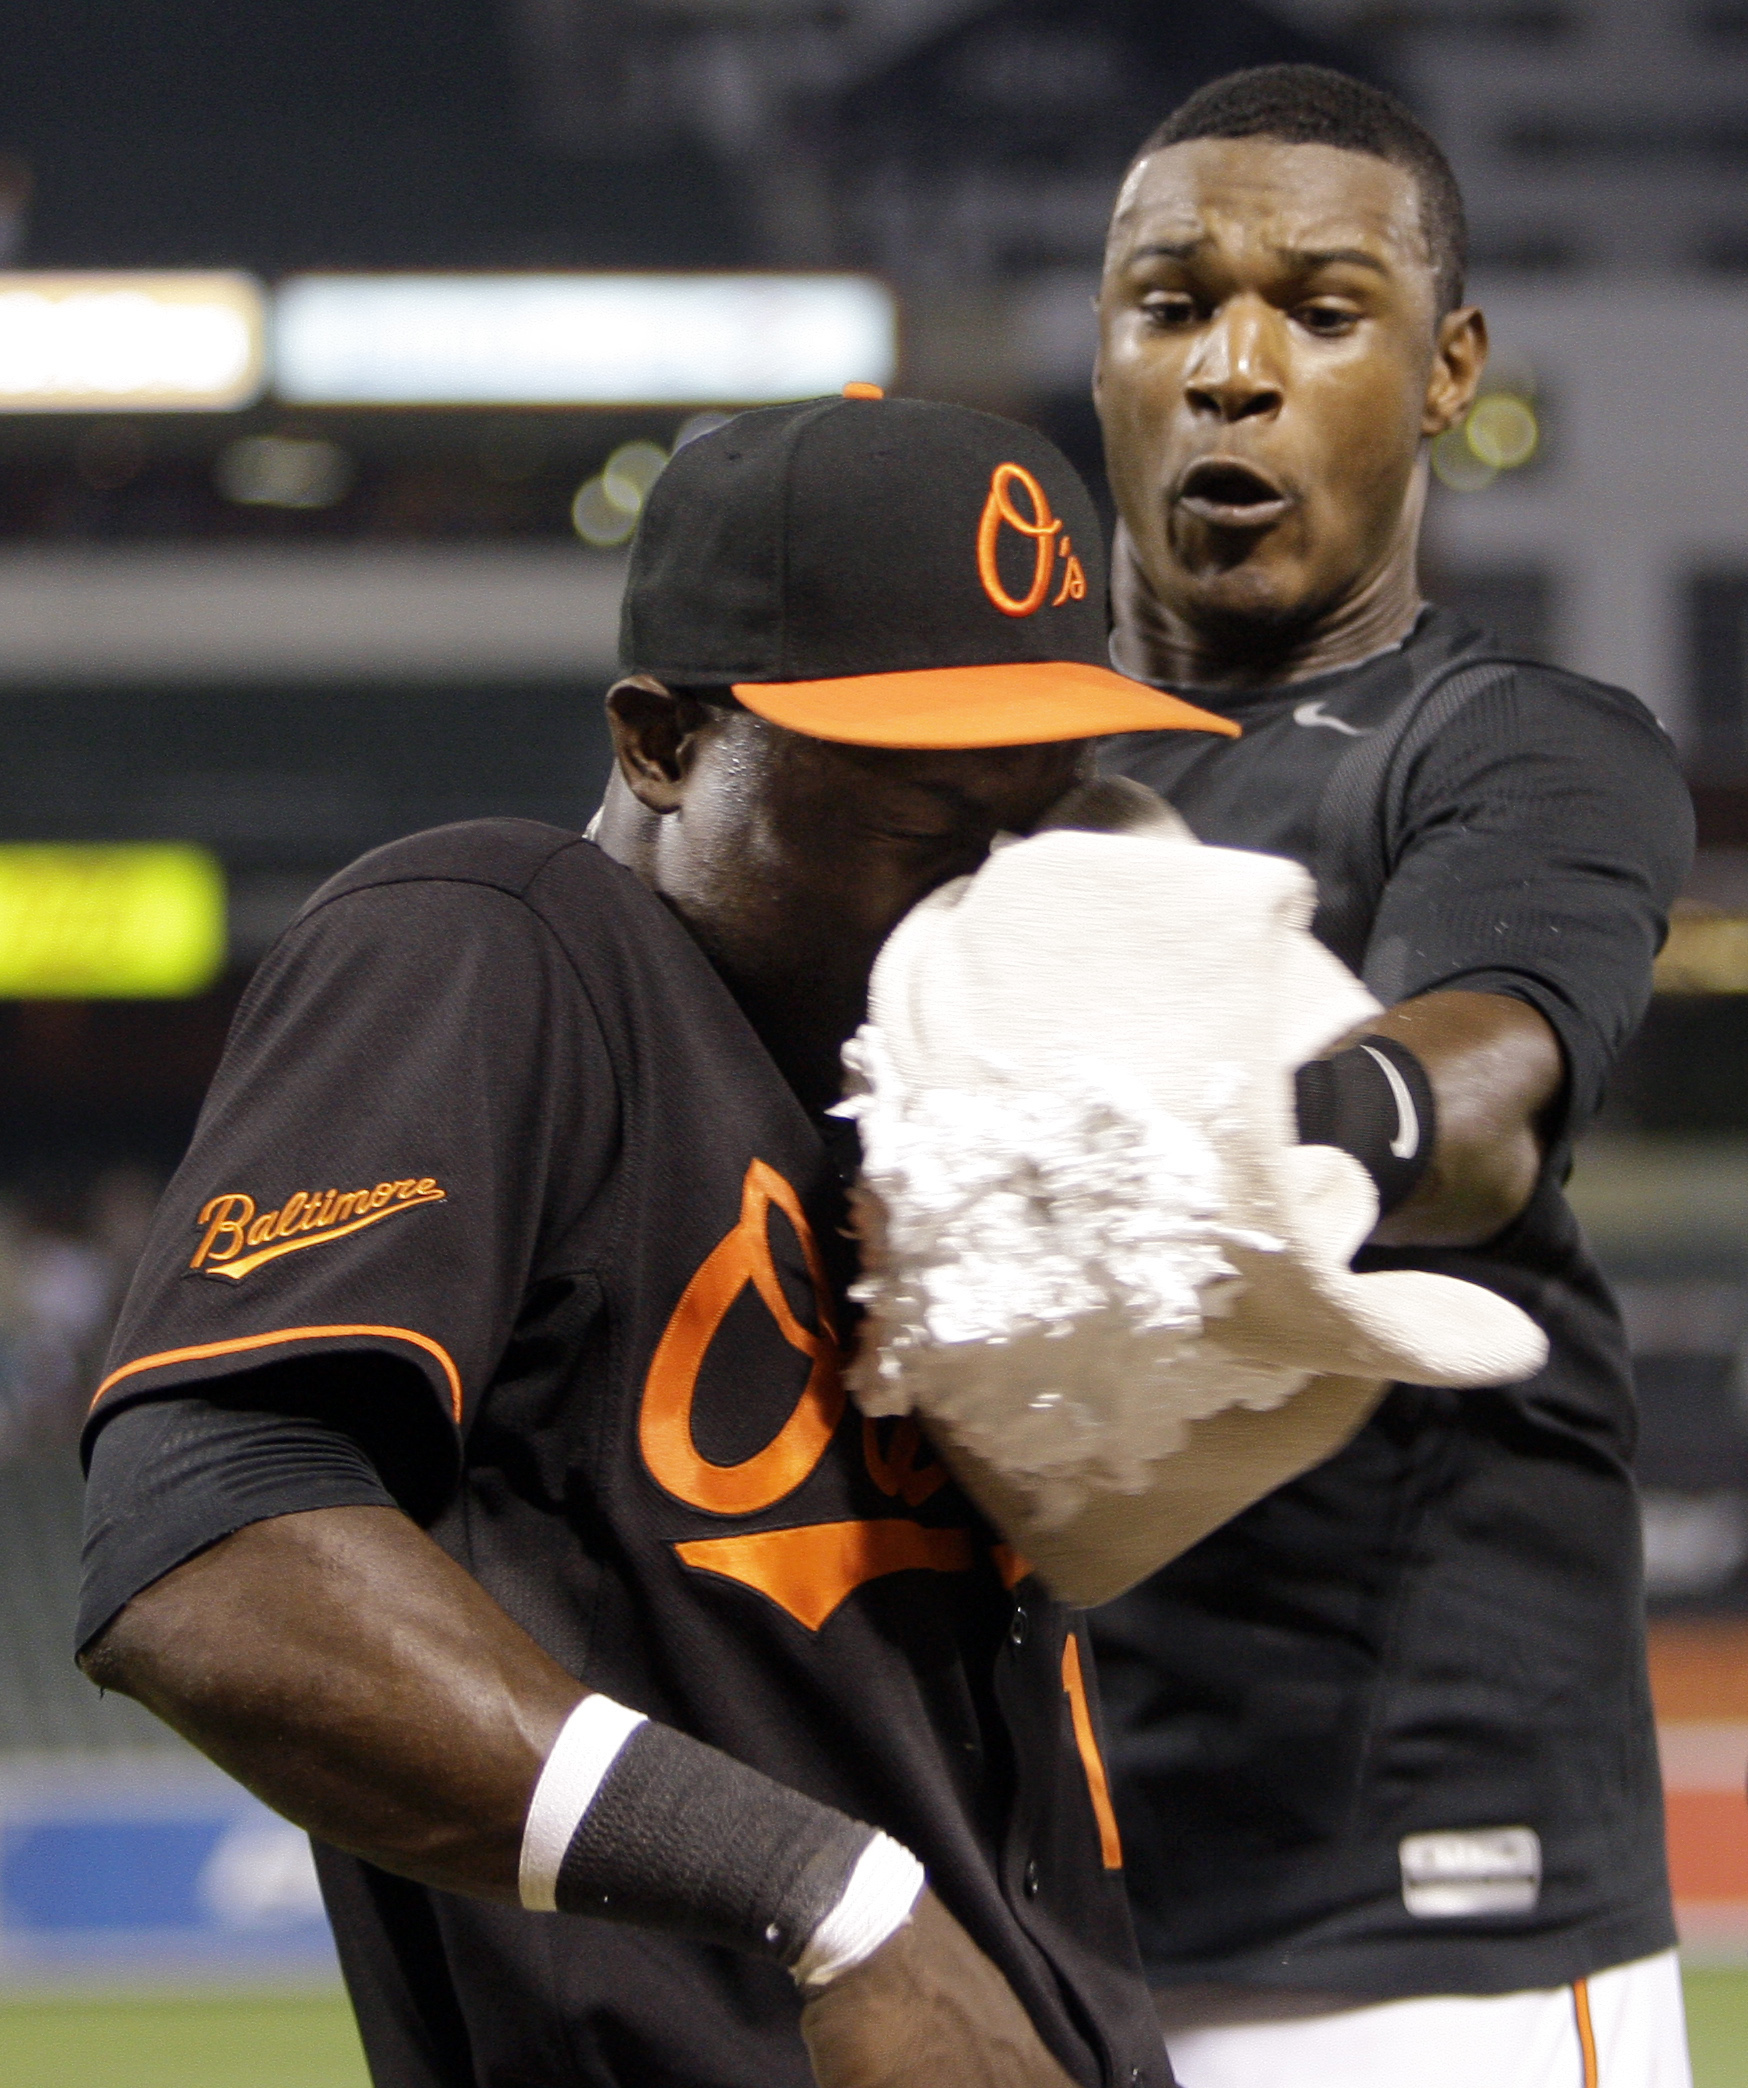 FILE - In this Aug. 14, 2009, file photo, Baltimore Orioles' Felix Pie, left, is hit in the face with a shaving cream pie by teammate Adam Jones, right, after their team defeated the Los Angeles Angels inn a baseball game in Baltimore. Over the last sever